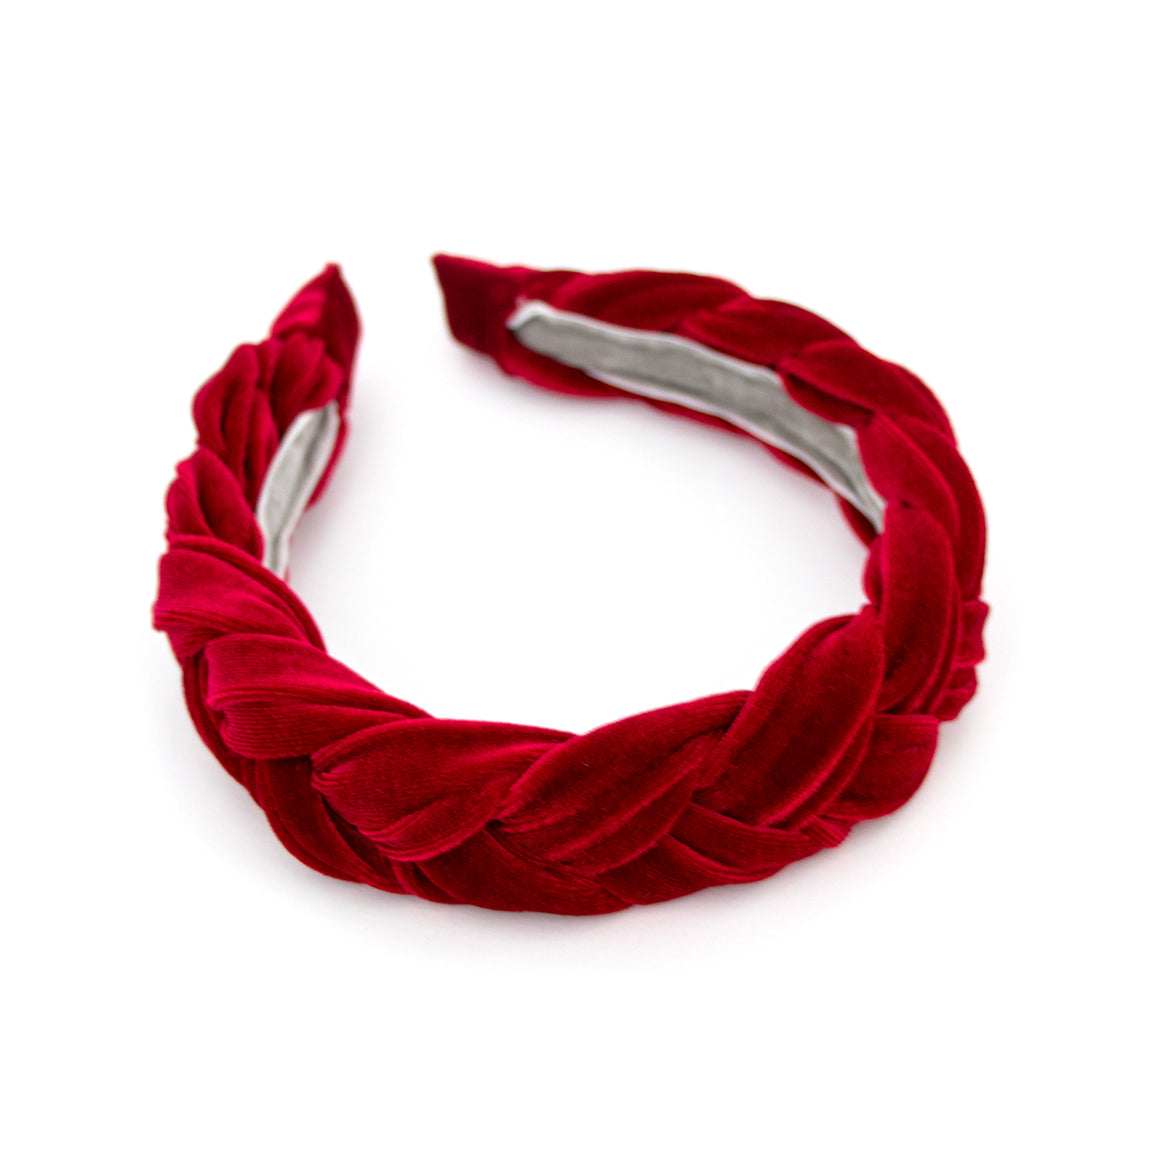 Ruby Braided Headband